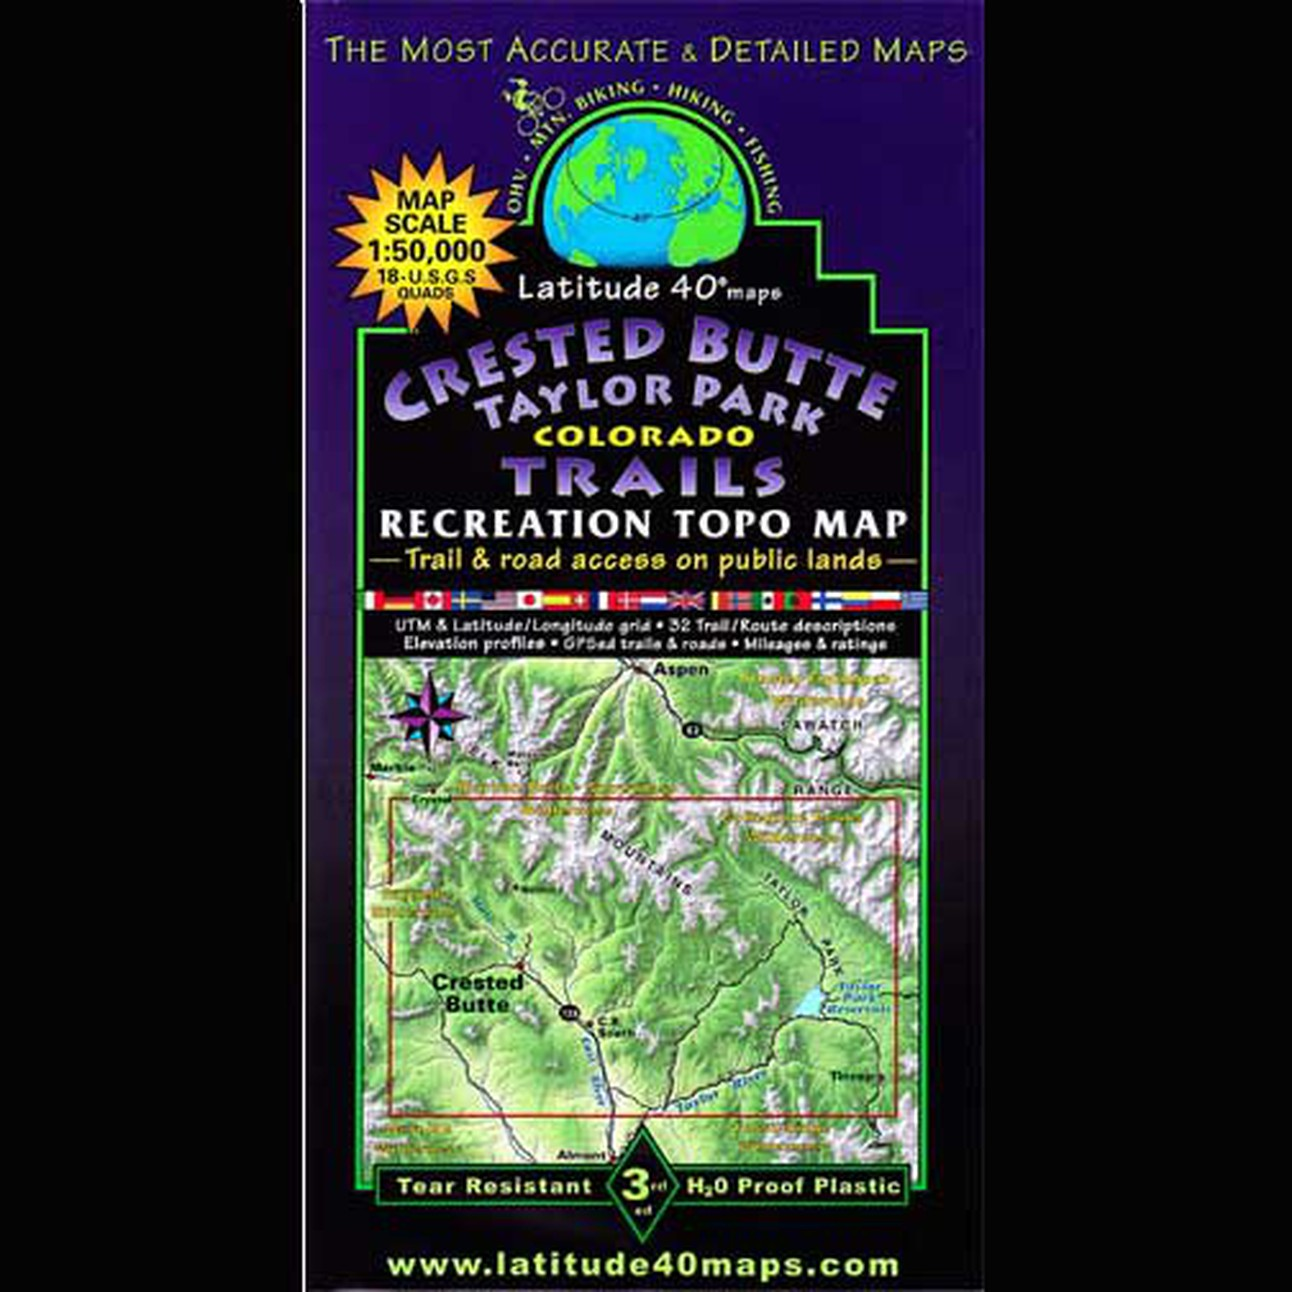 Taylor Park Colorado Map.Latitude 40 Crested Butte Taylor Park Colorado Trails Recreation